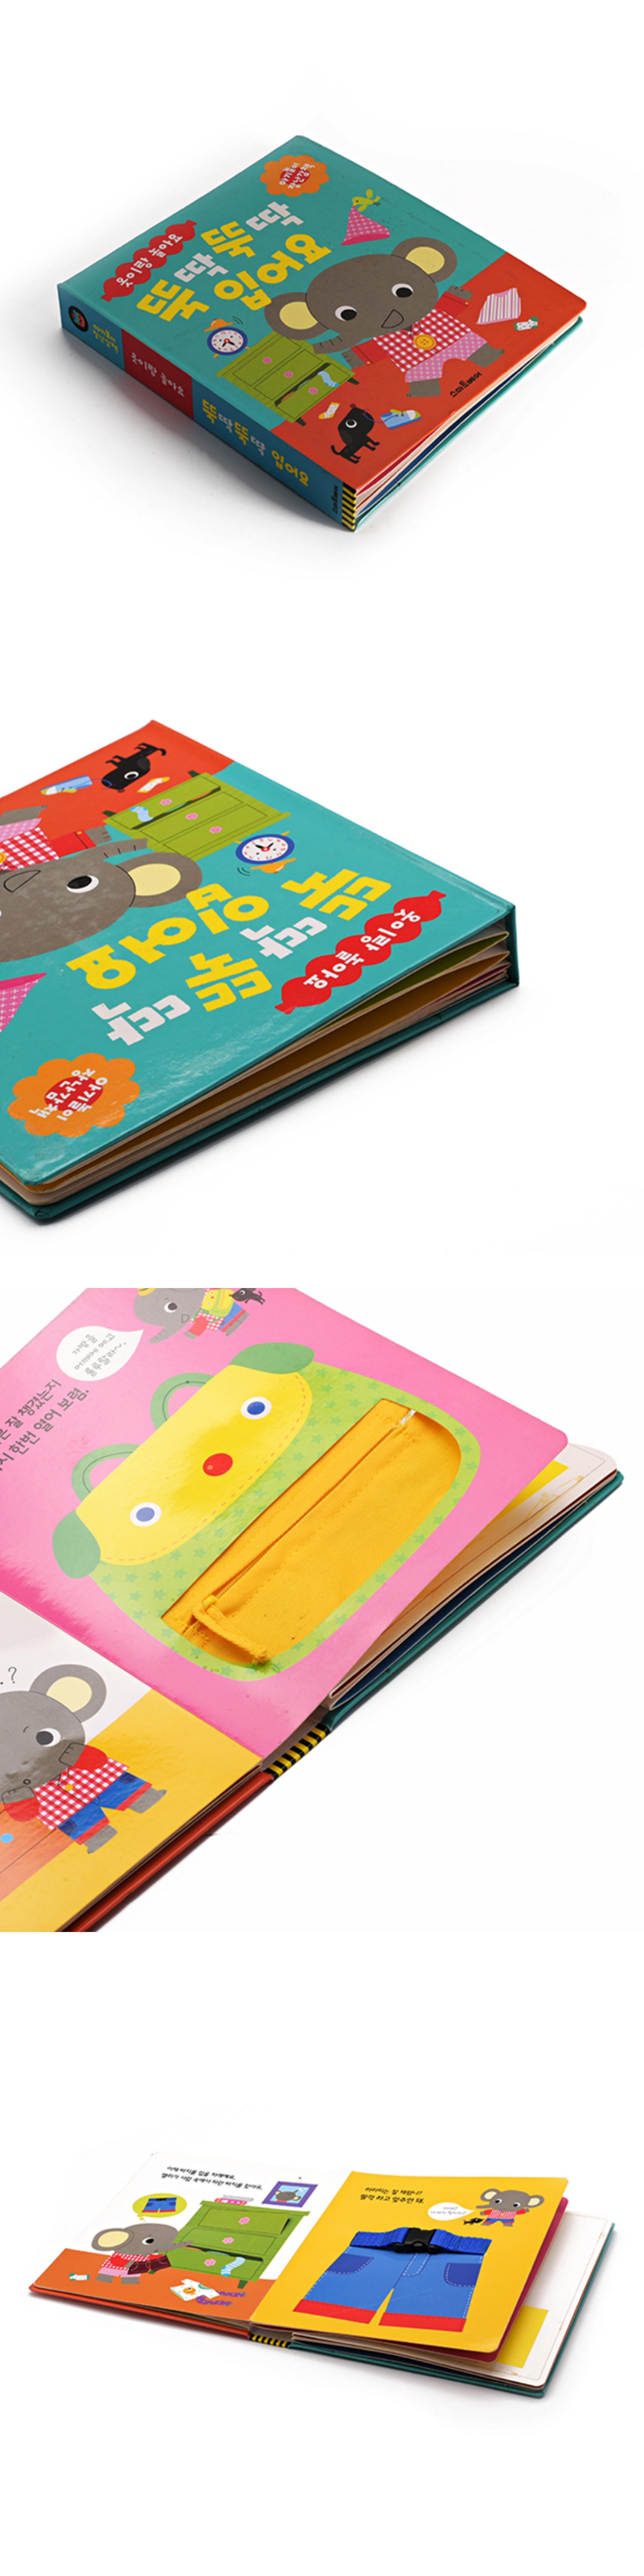 2020 cheap sample support glossy paper customized china full color book printing hardcover children board books